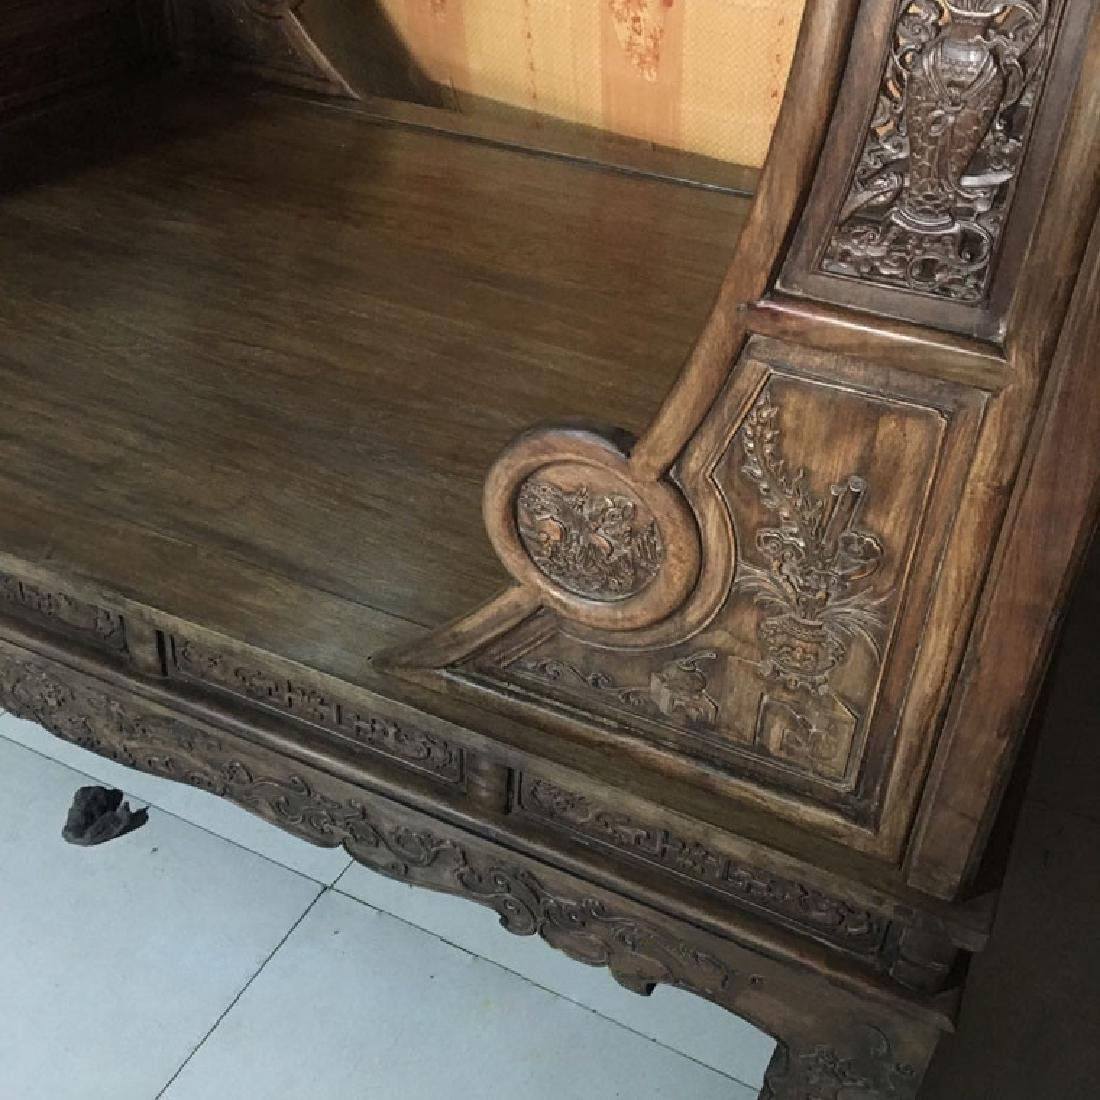 CHINESE QING DYNASTY HUANGHUALI MOON BED FRAME - 2